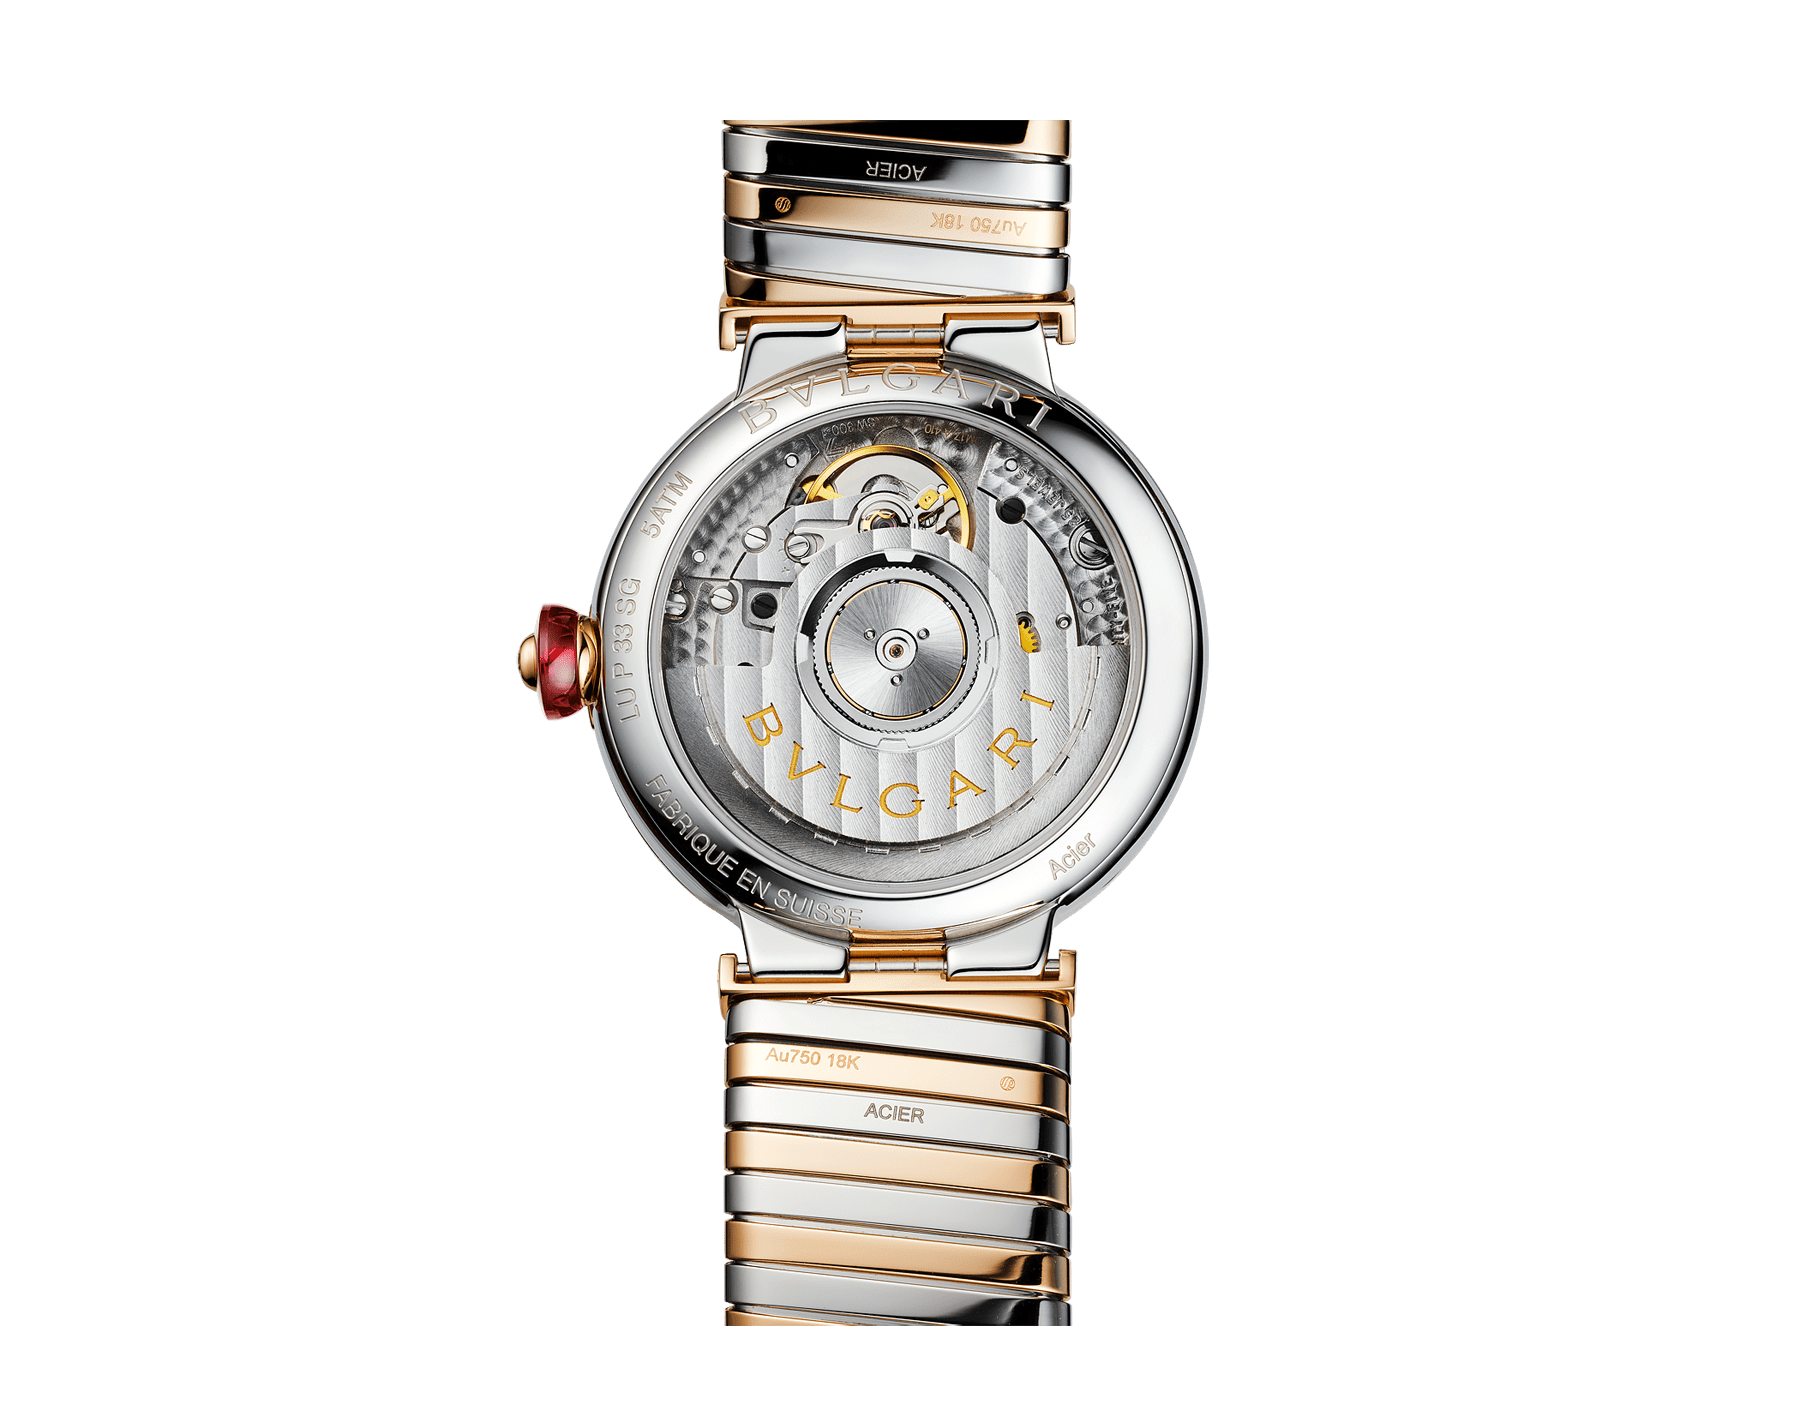 LVCEA watch with stainless steel case, 18 kt rose gold bezel, red lacquered dial, diamond indexes and tubogas bracelet in 18 kt rose gold and stainless steel 103123 image 4